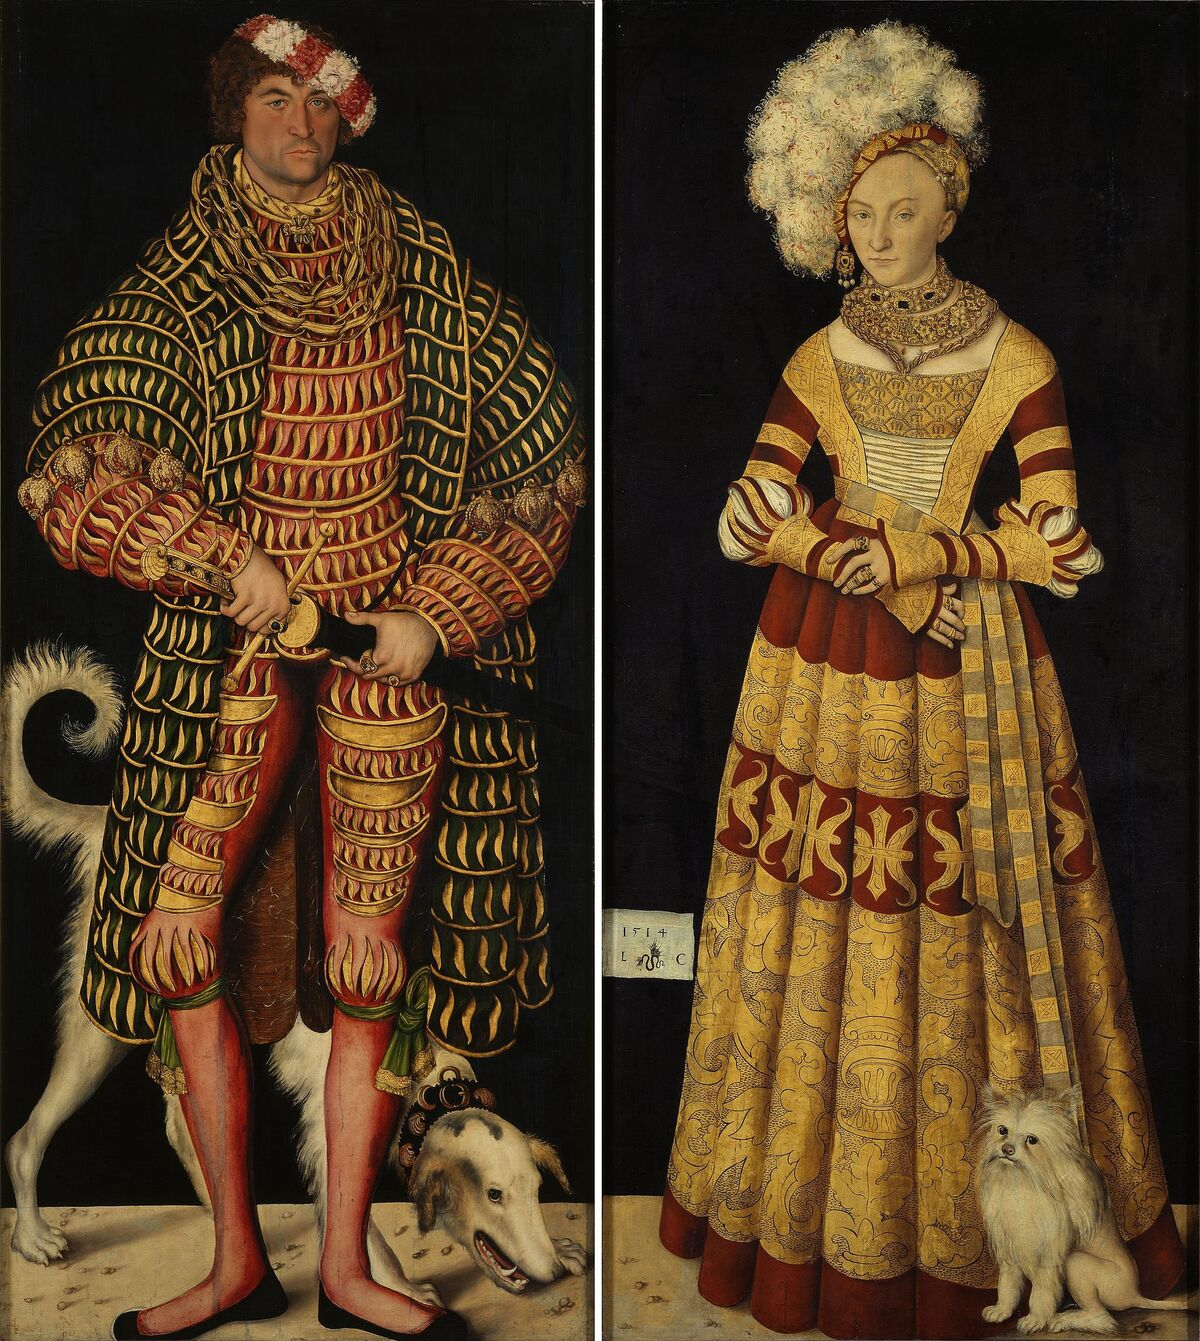 Lucas Cranach the Elder, Portraits of Henry the Pious, Duke of Saxony and his wife Katharina von Mecklenburg, 1514. Image via Wikimedia Commons.